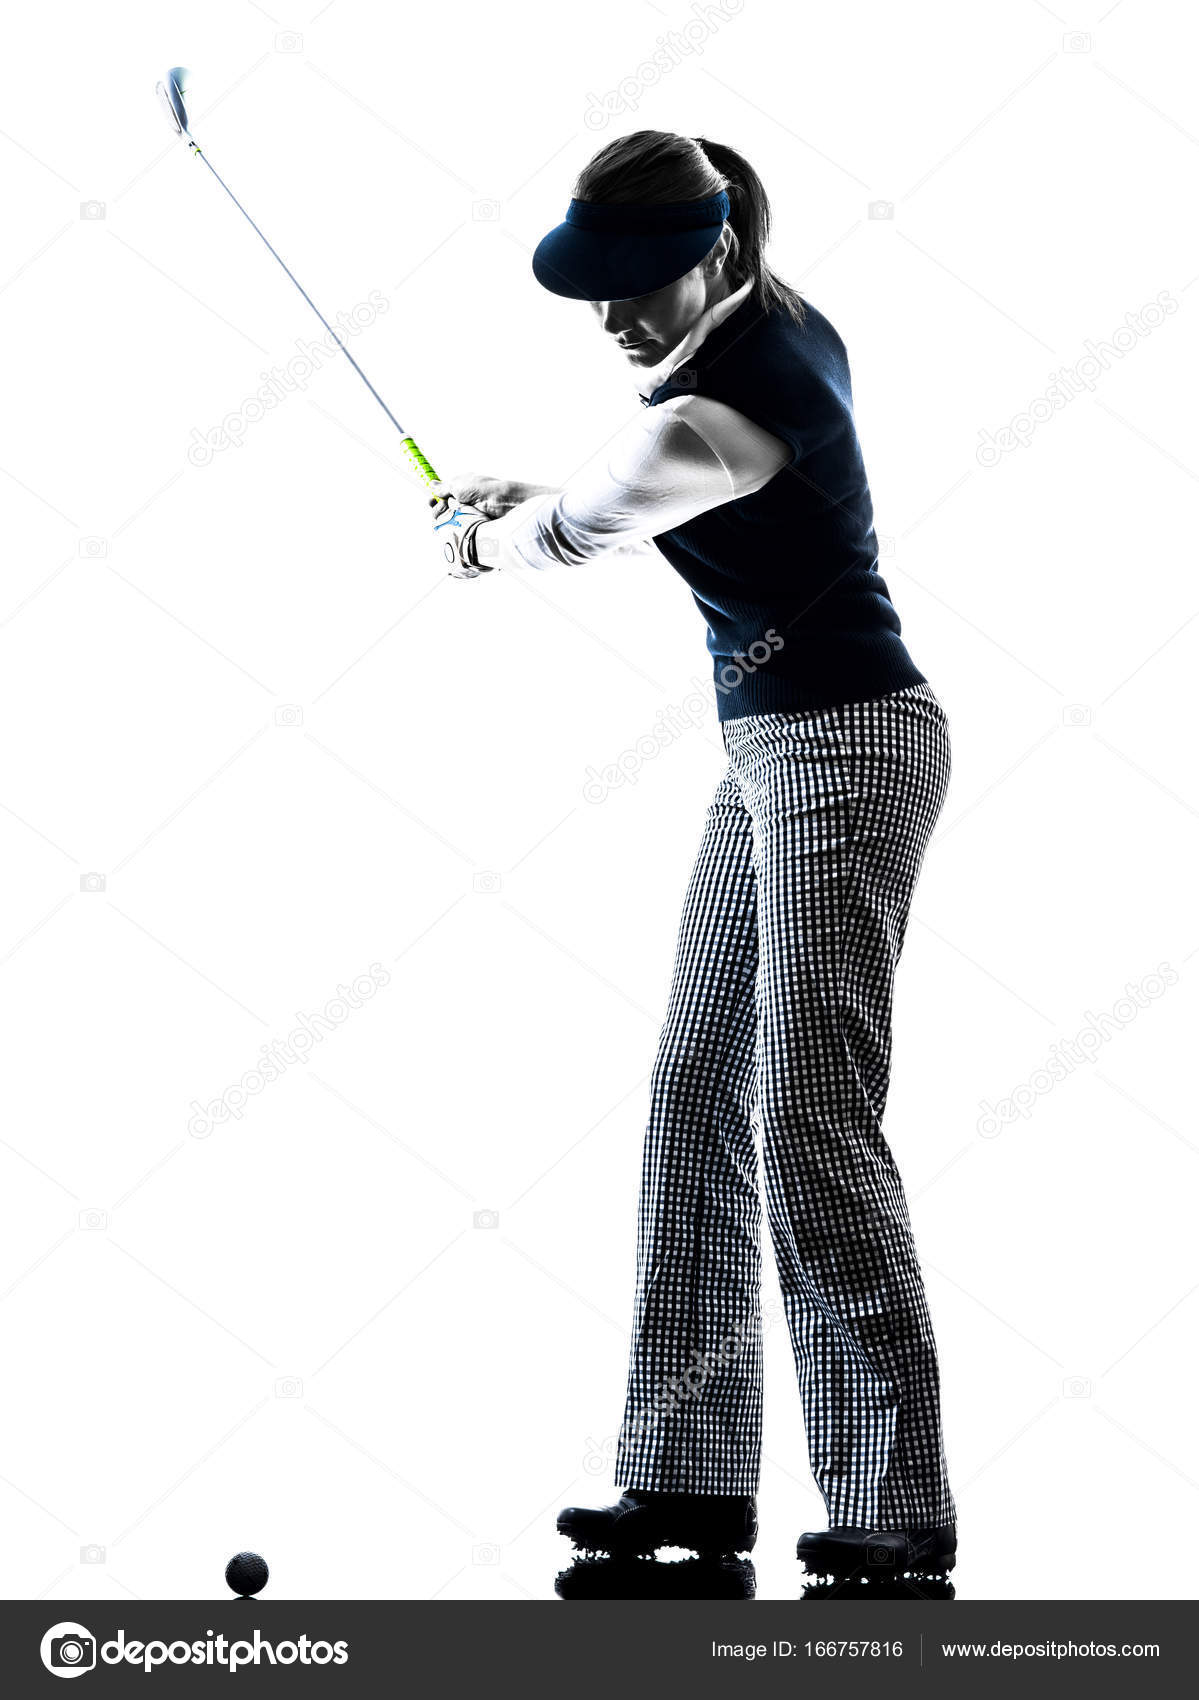 Woman Golfer Golfing Silhouette Stock Photo C Stylepics 166757816